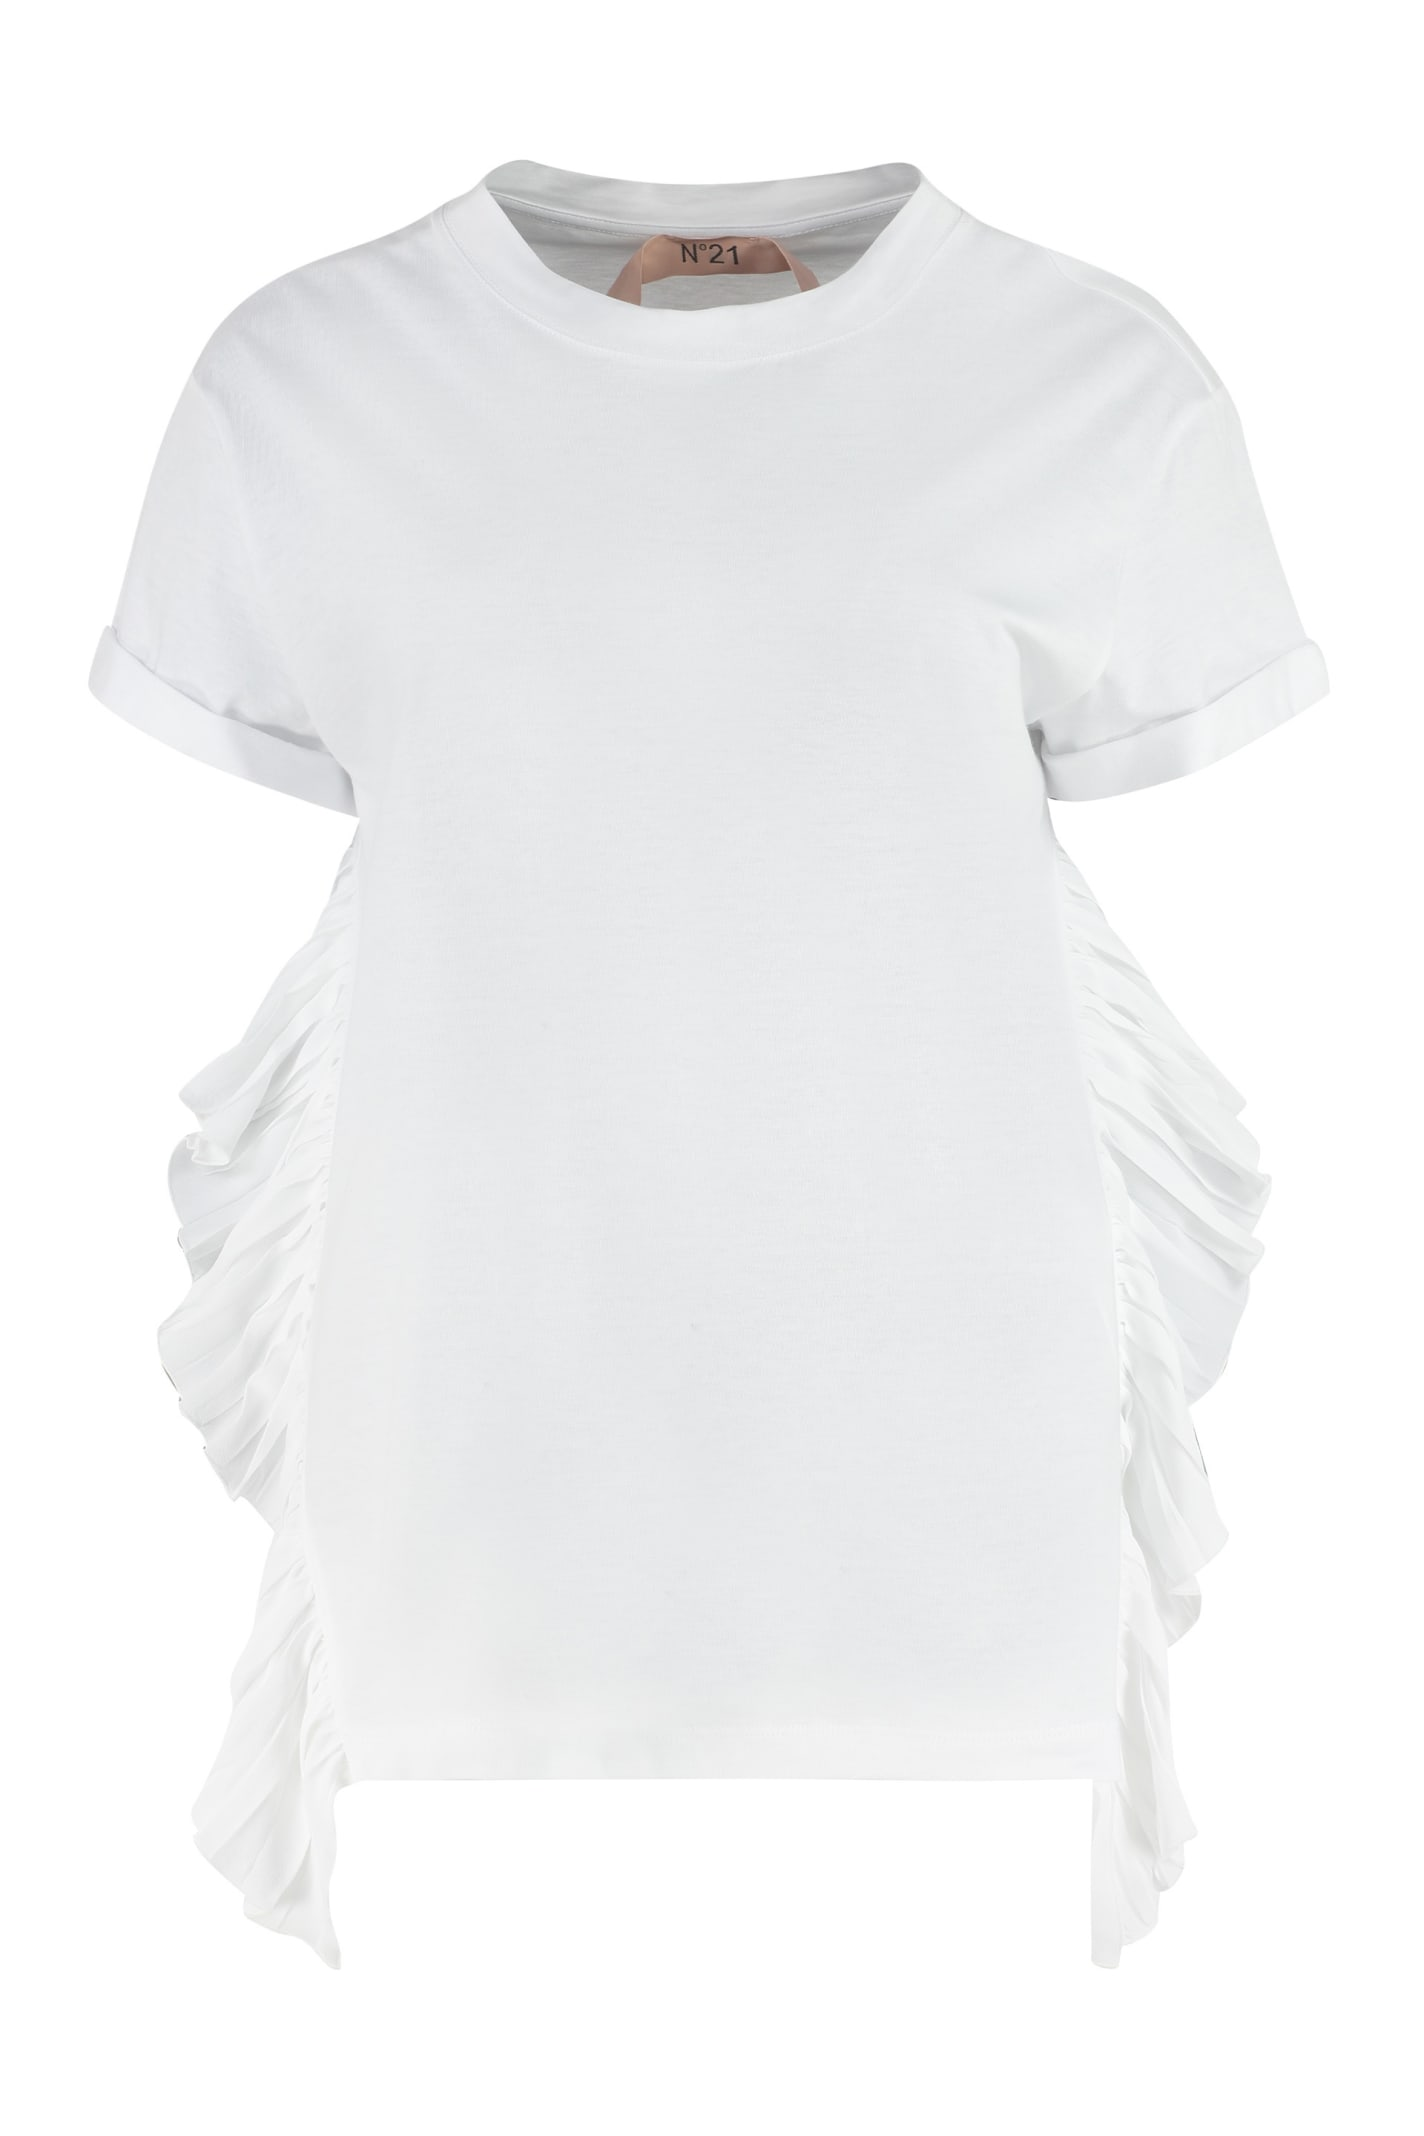 N°21 Cottons PLEATED RUFFLE DETAIL T-SHIRT